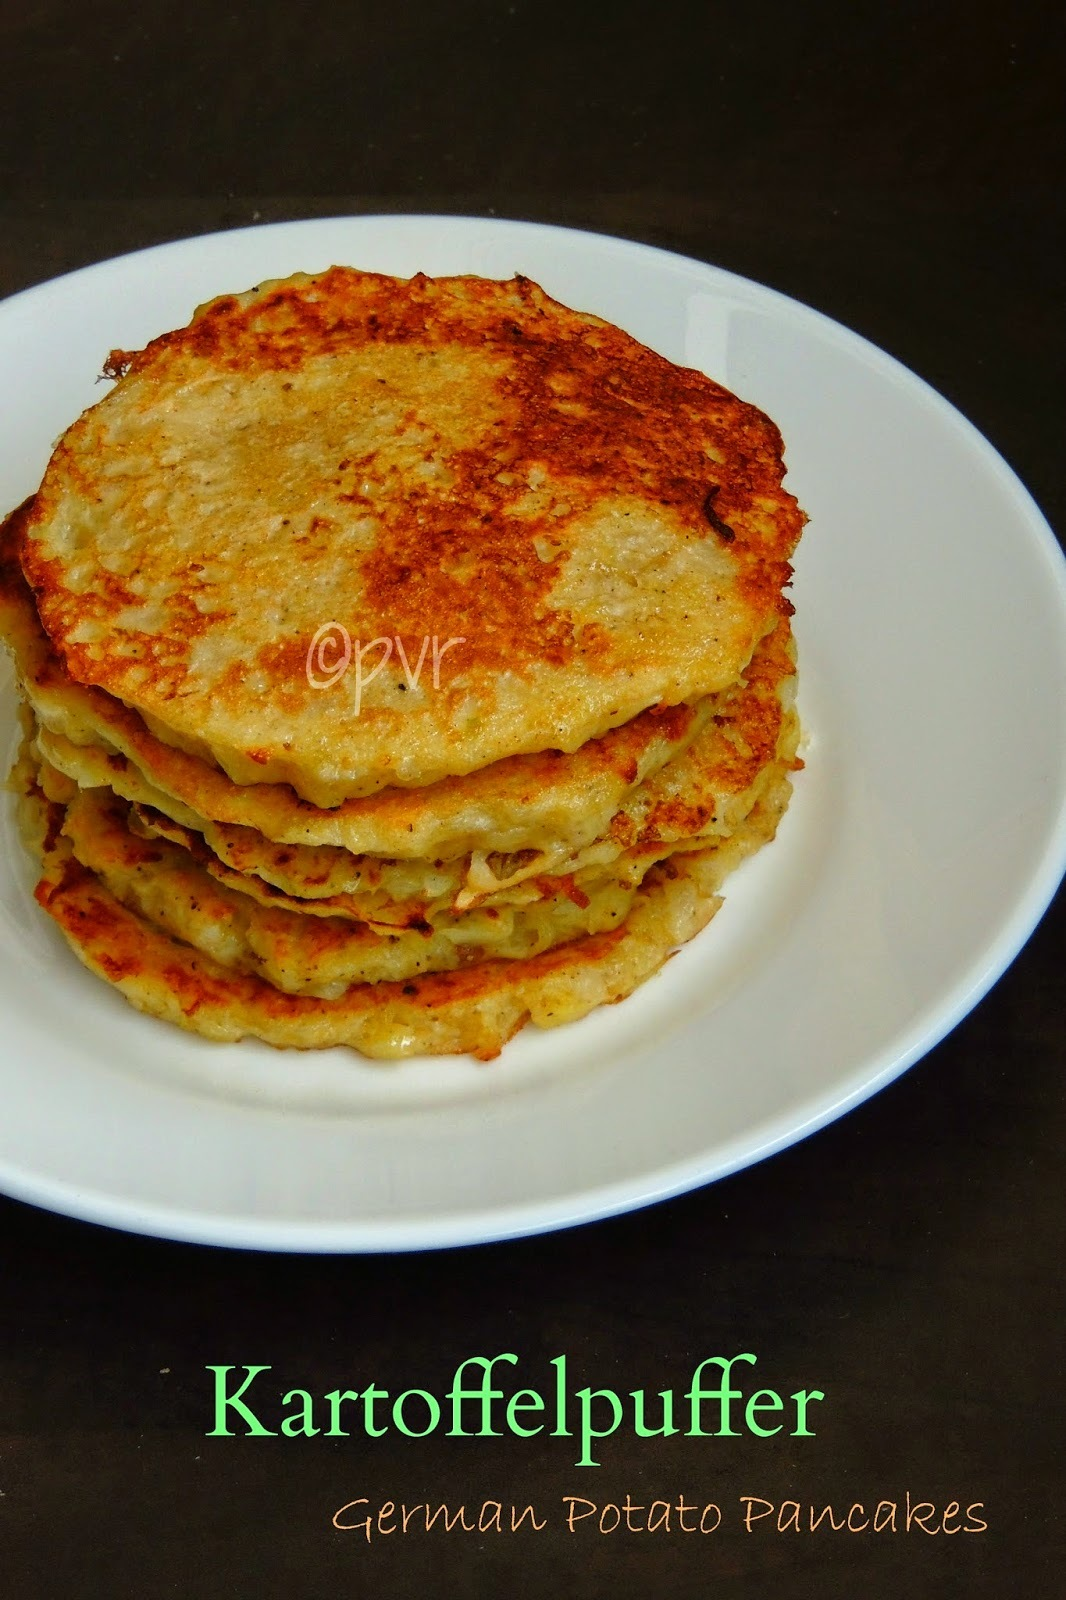 Kartoffelpuffer/German Potato Pancakes ~~ German Cuisine